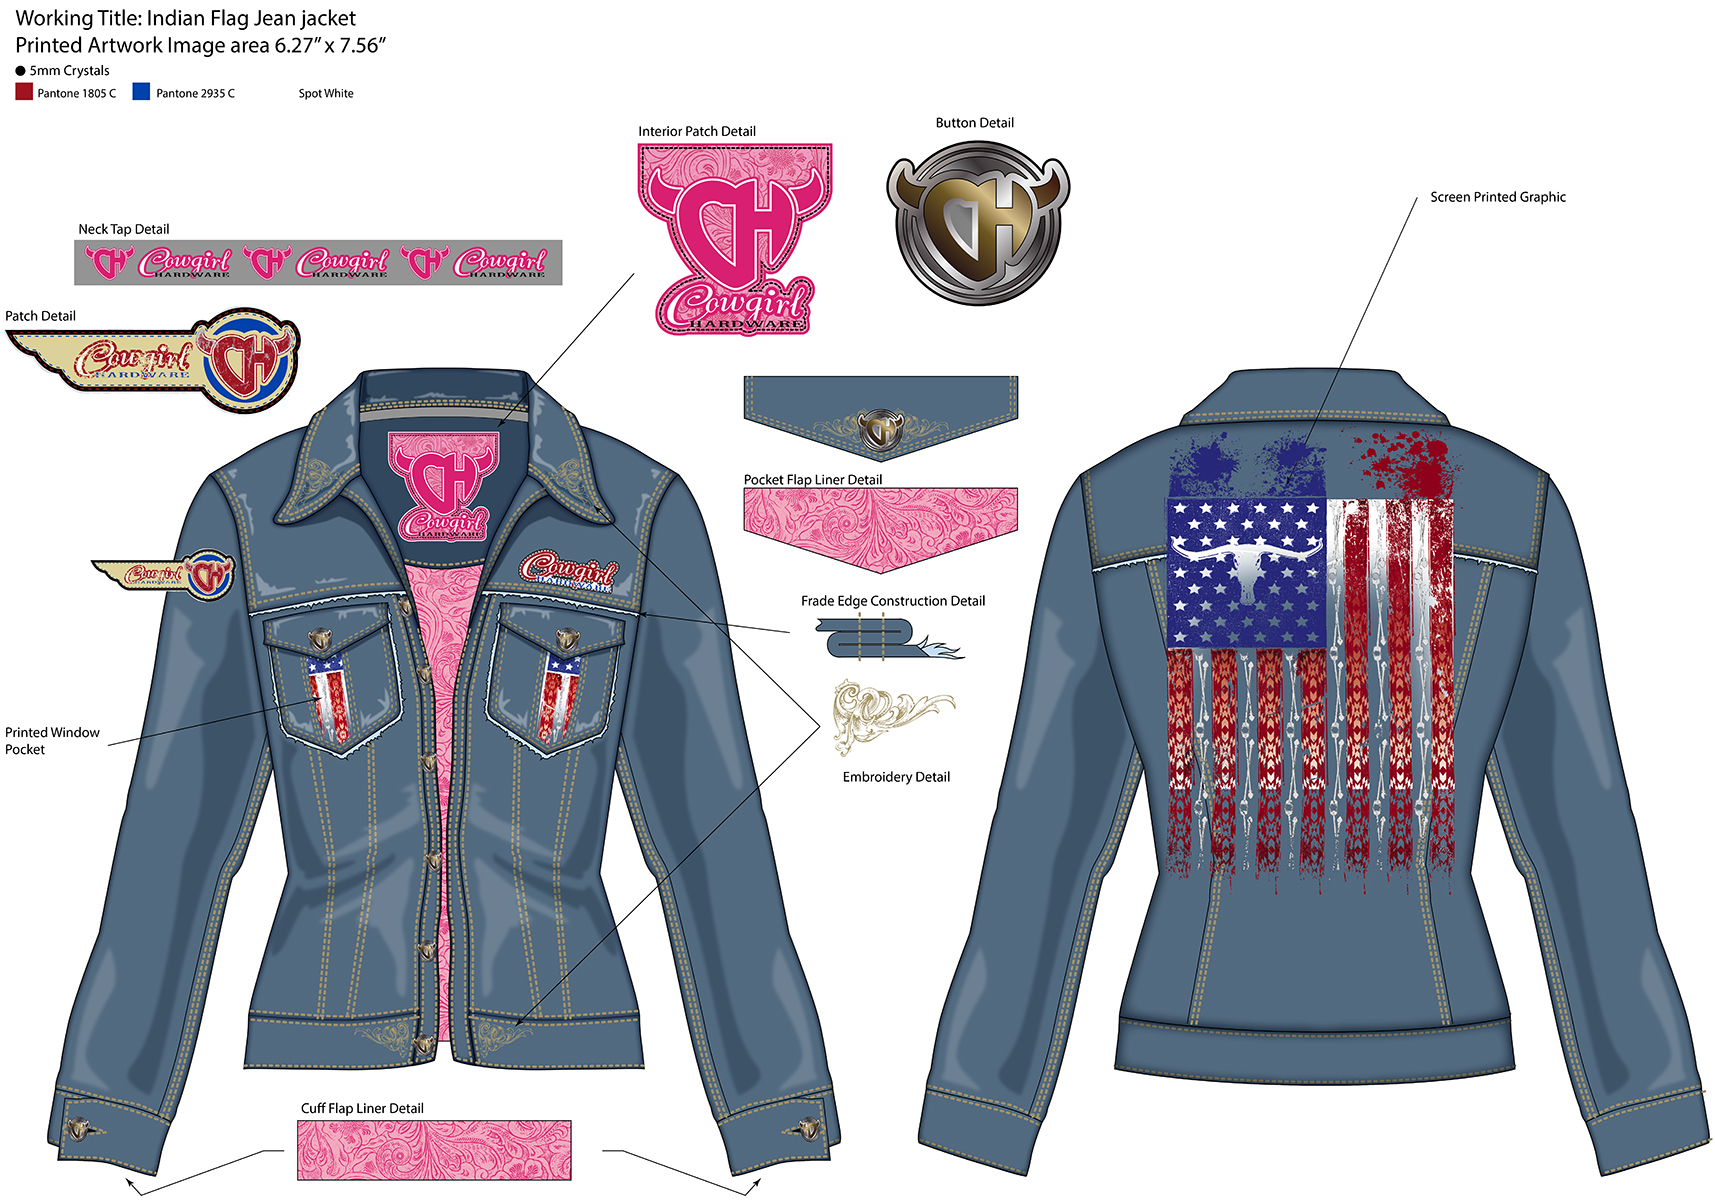 IndianFlagJeanJacket-2